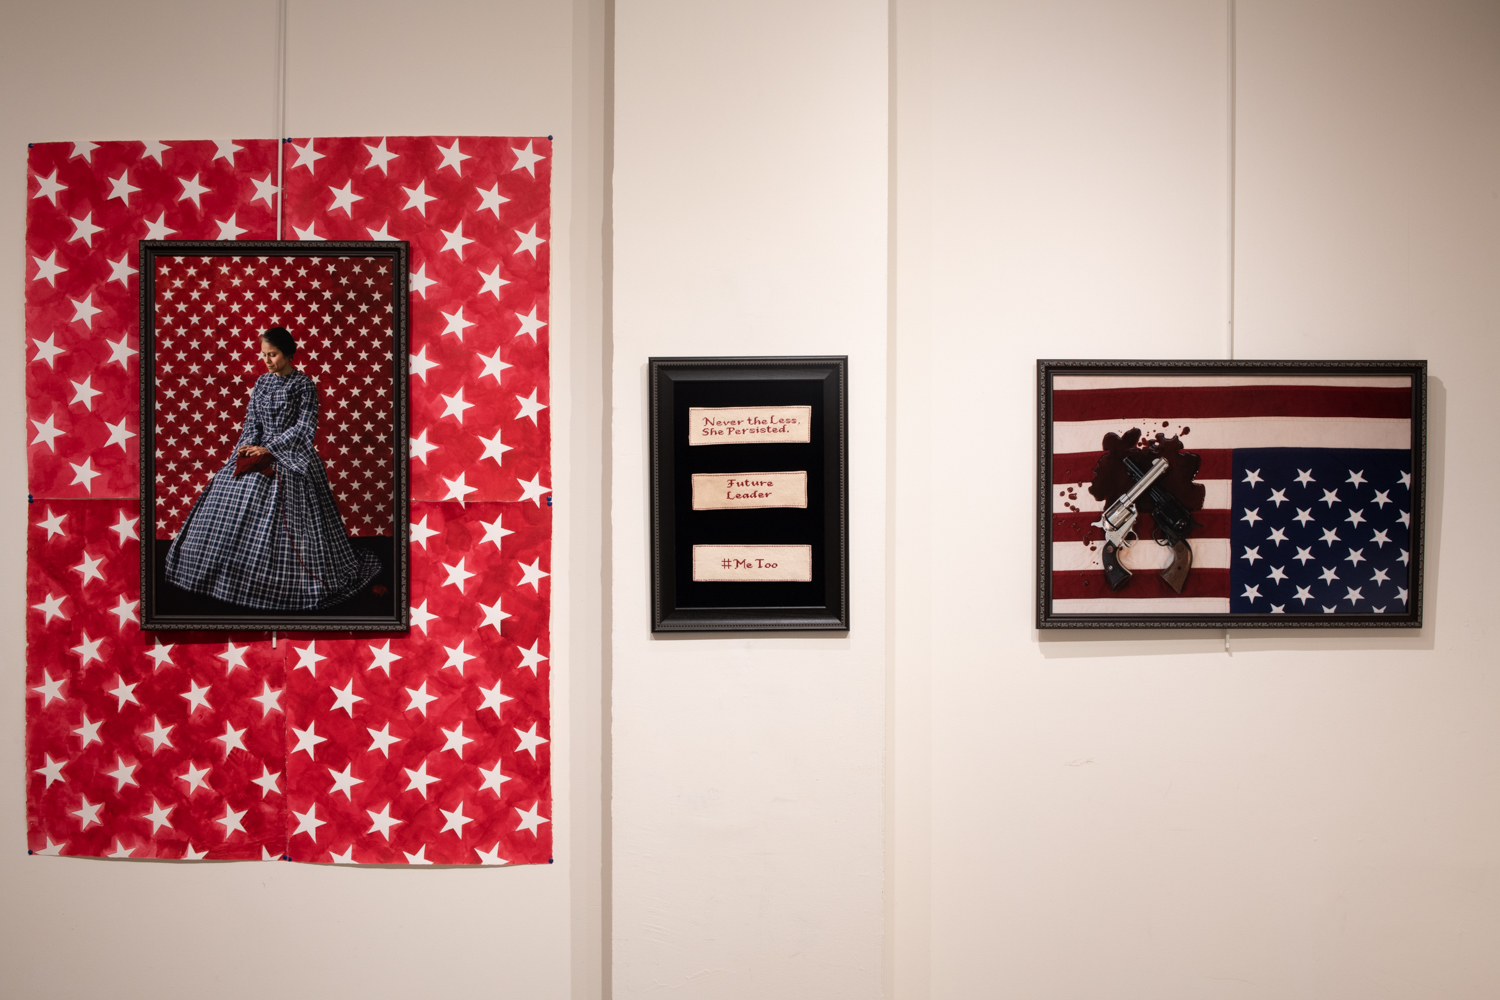 Blog Install Shots of Show-5.jpg